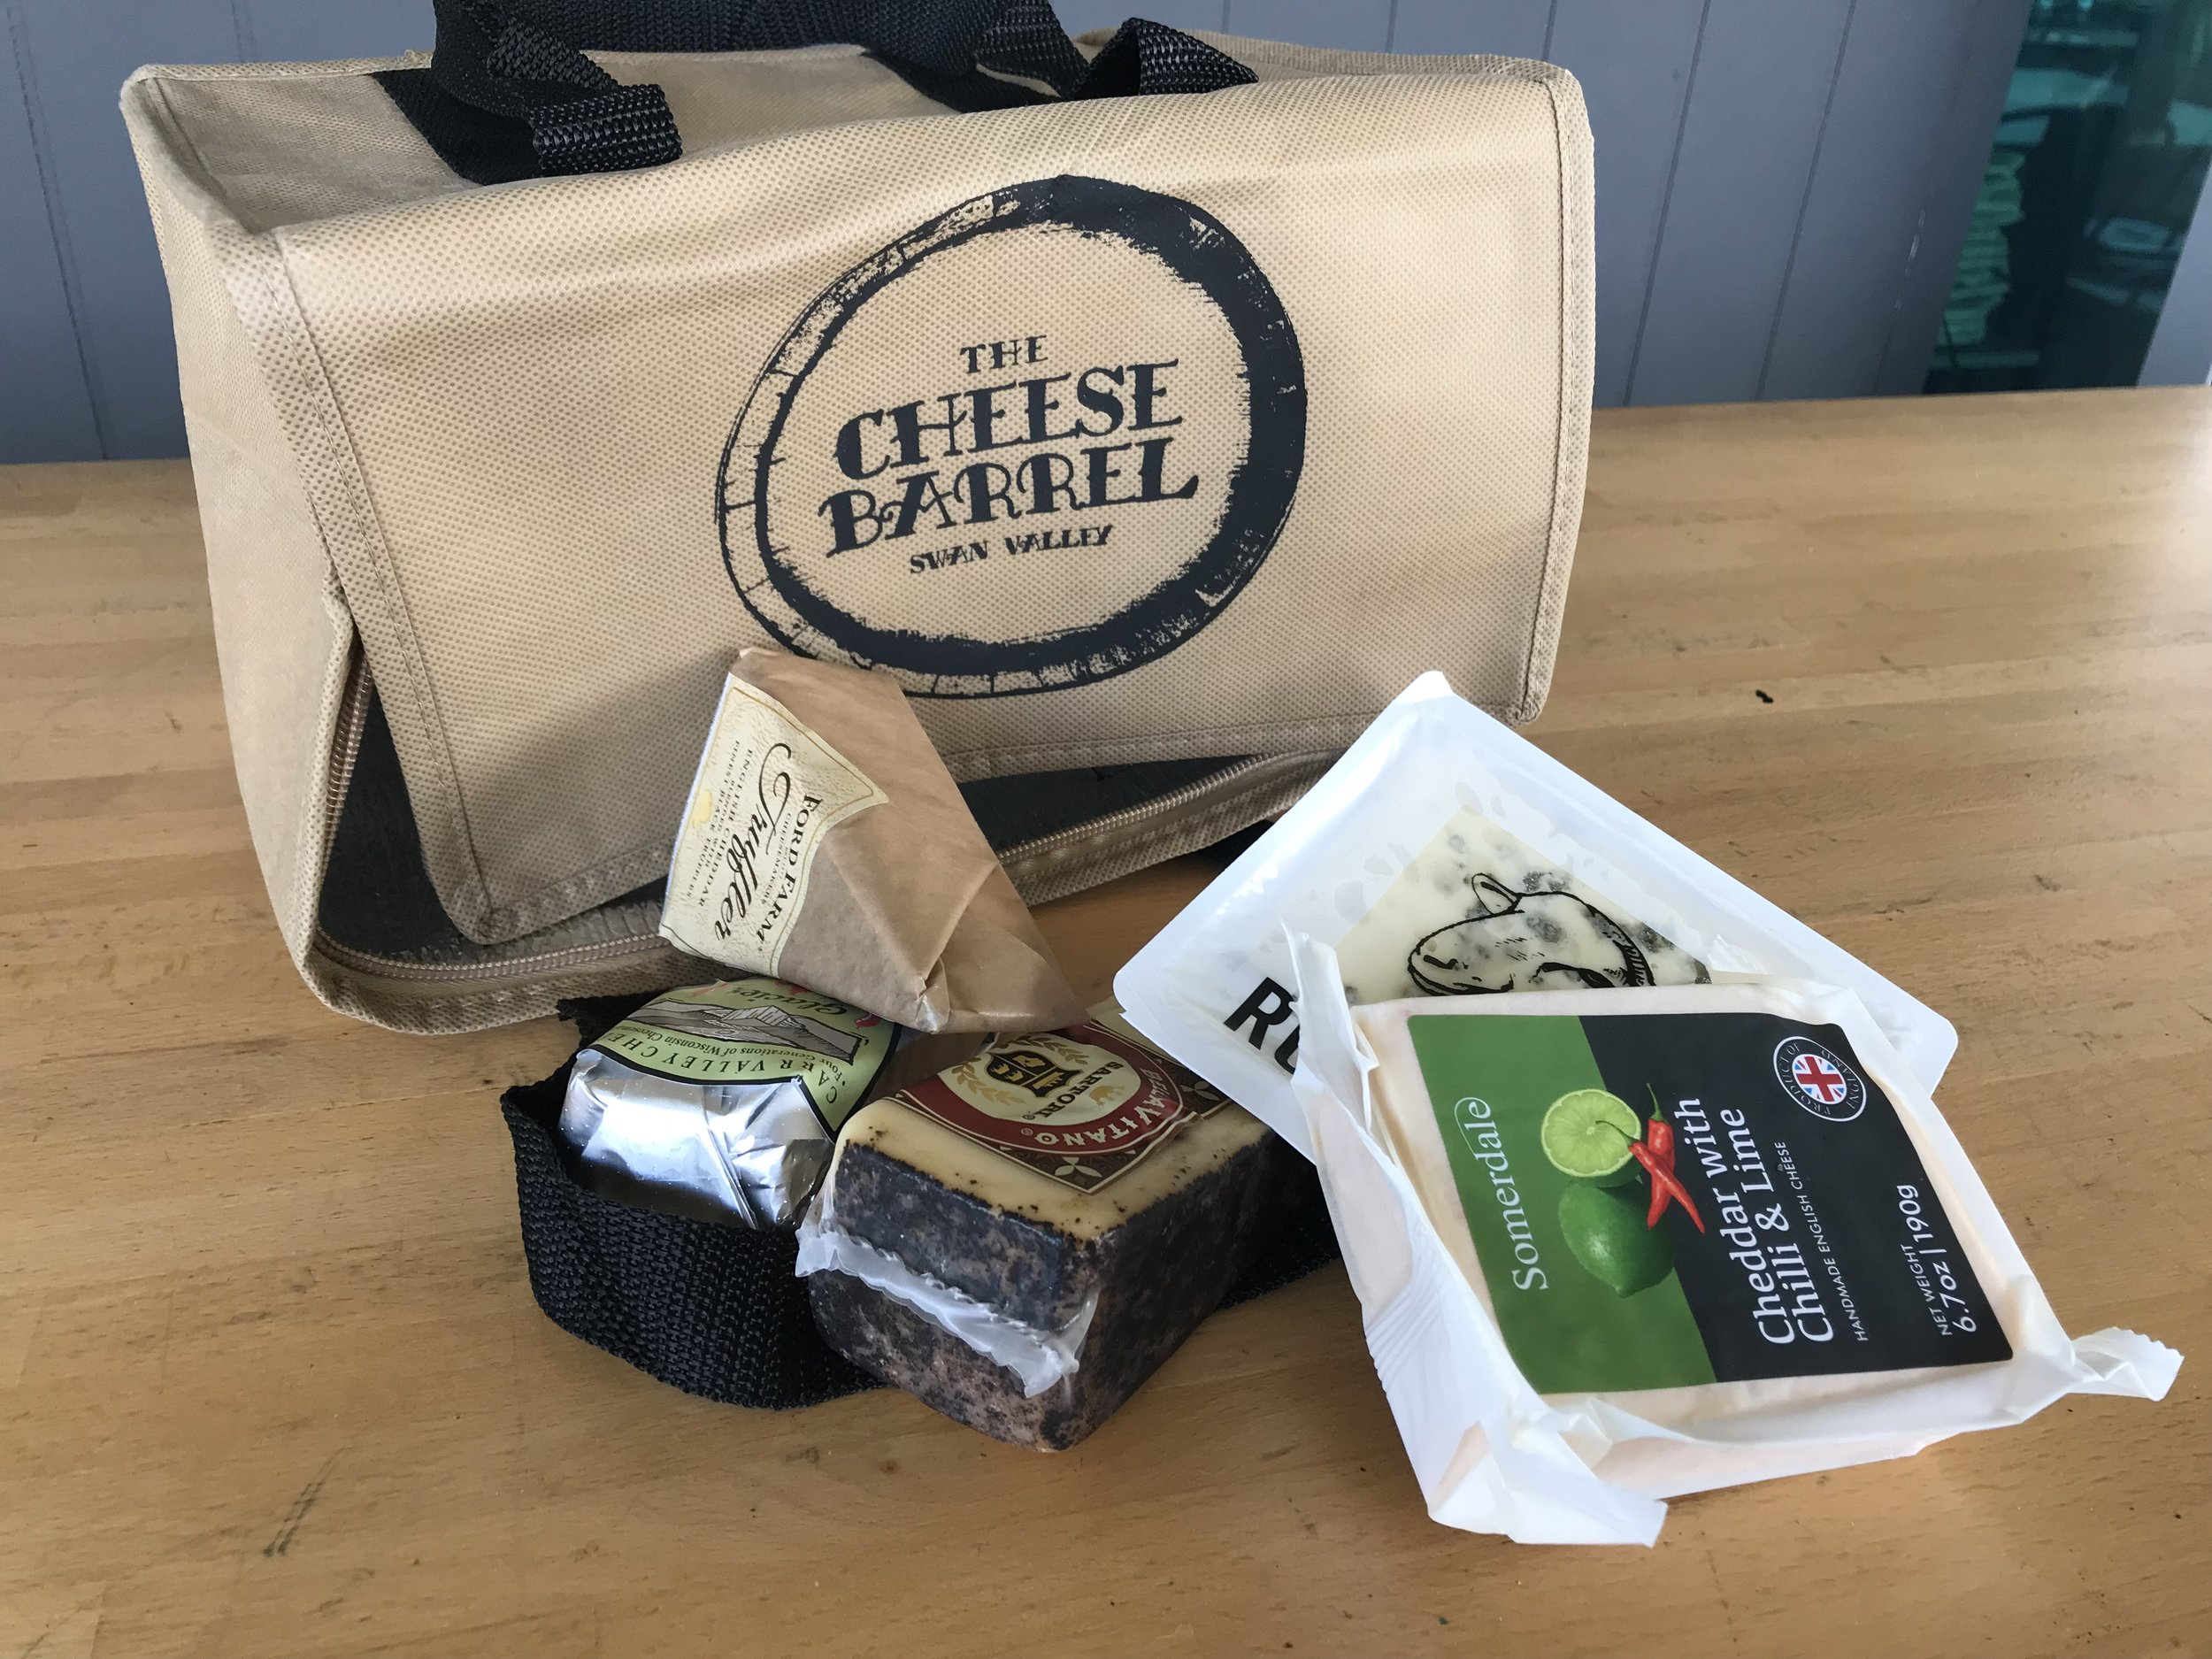 Fill your TCB cooler bag with cheesy goodies!